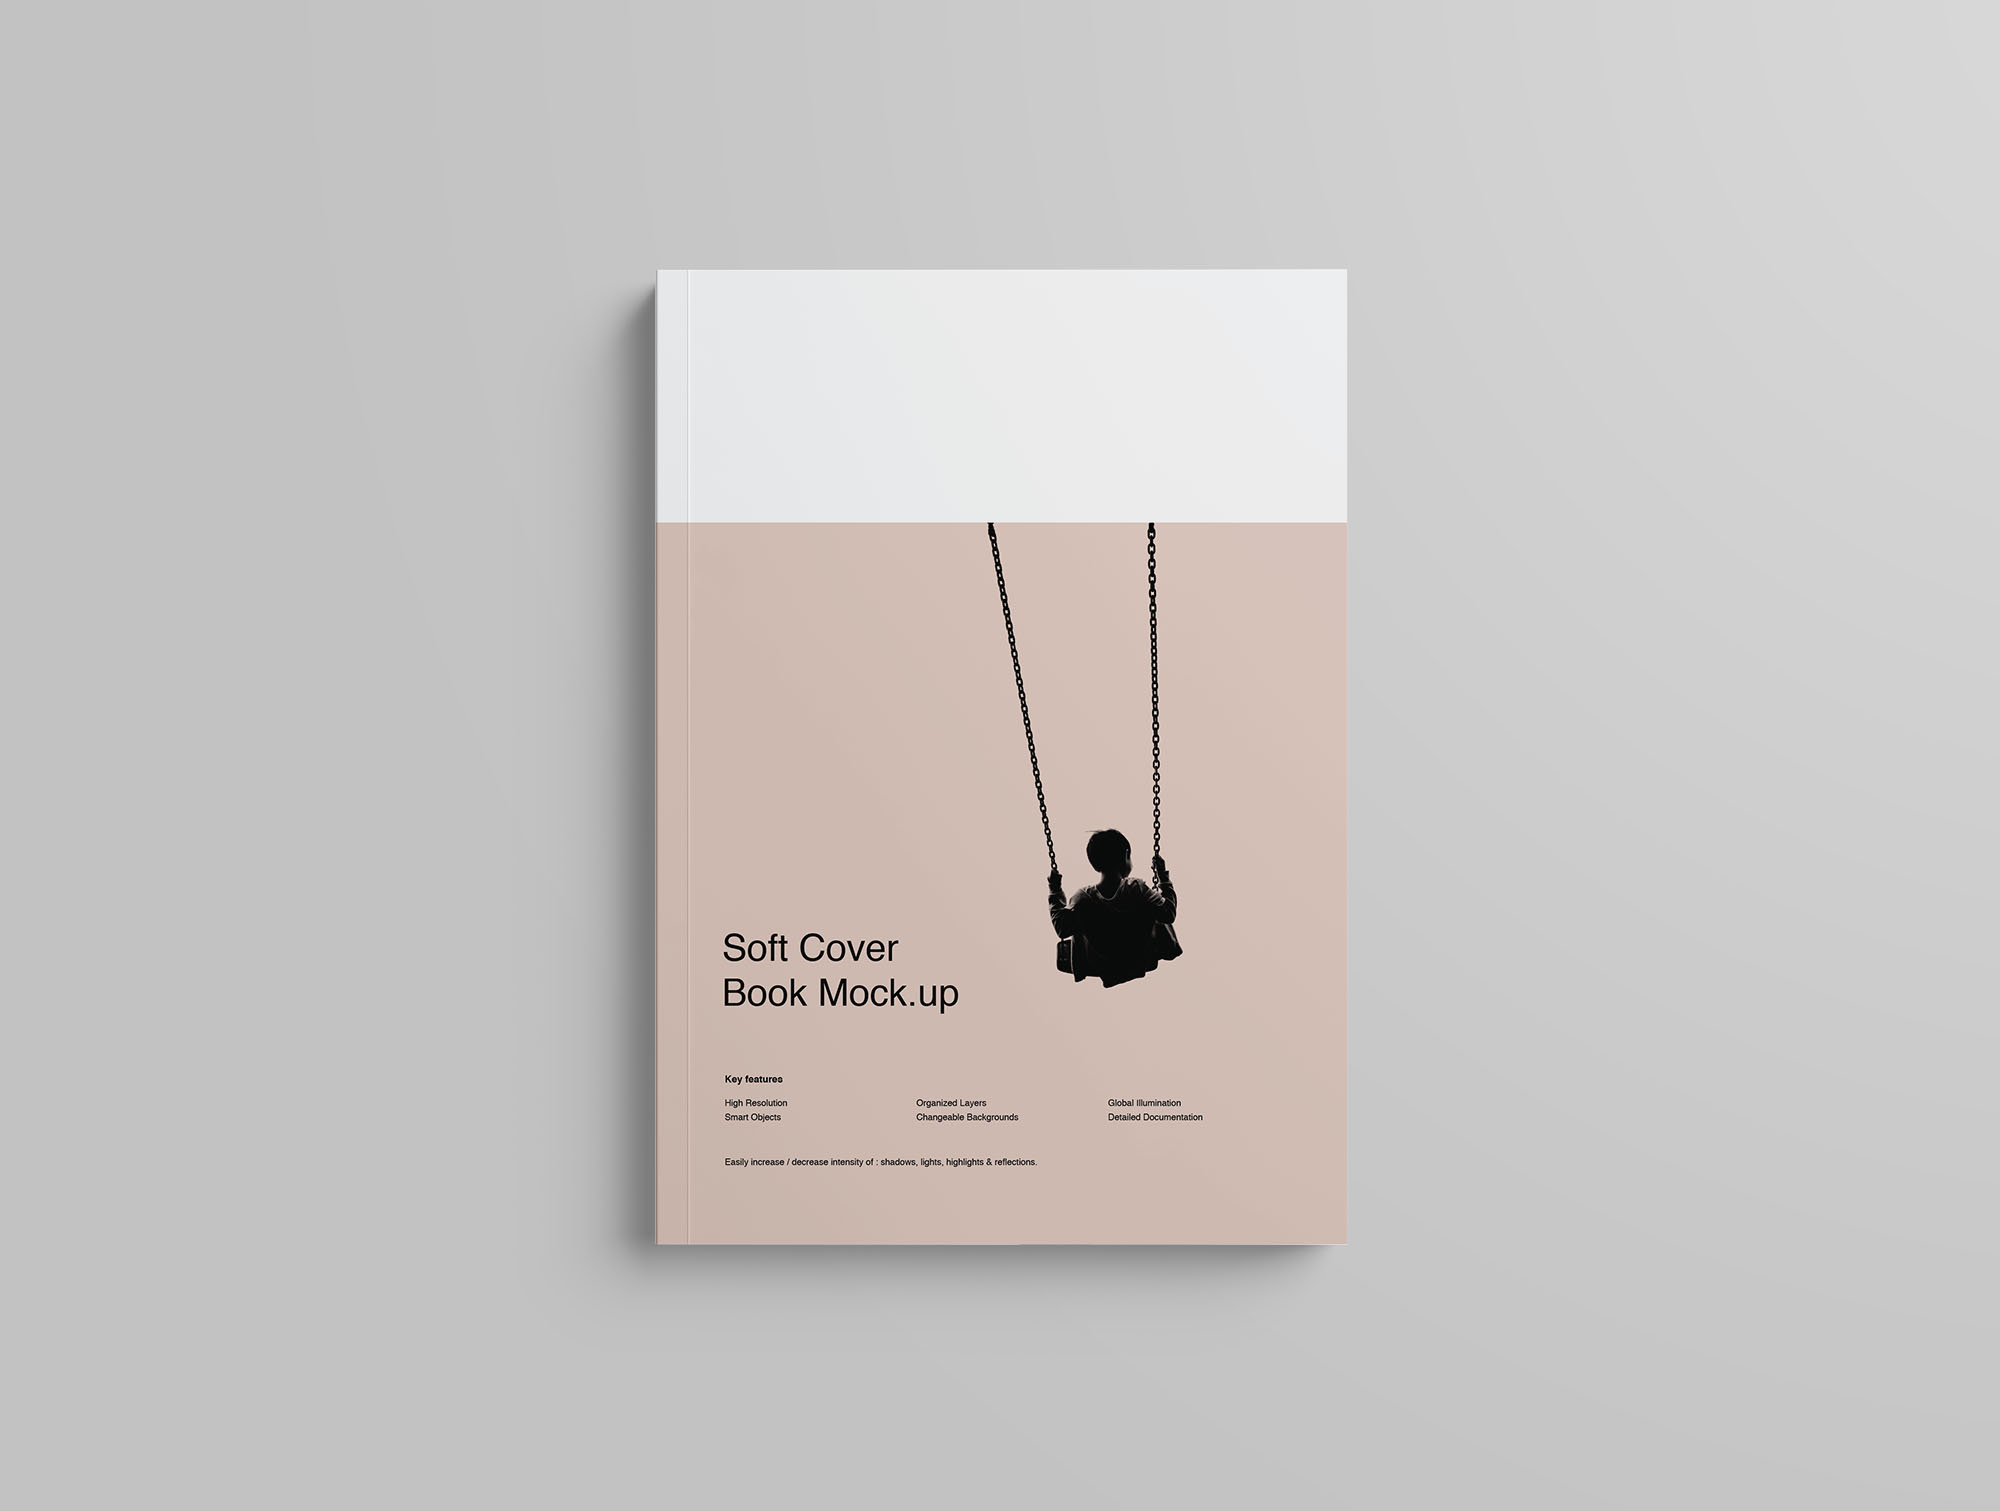 Softcover Book Mockup - Overhead